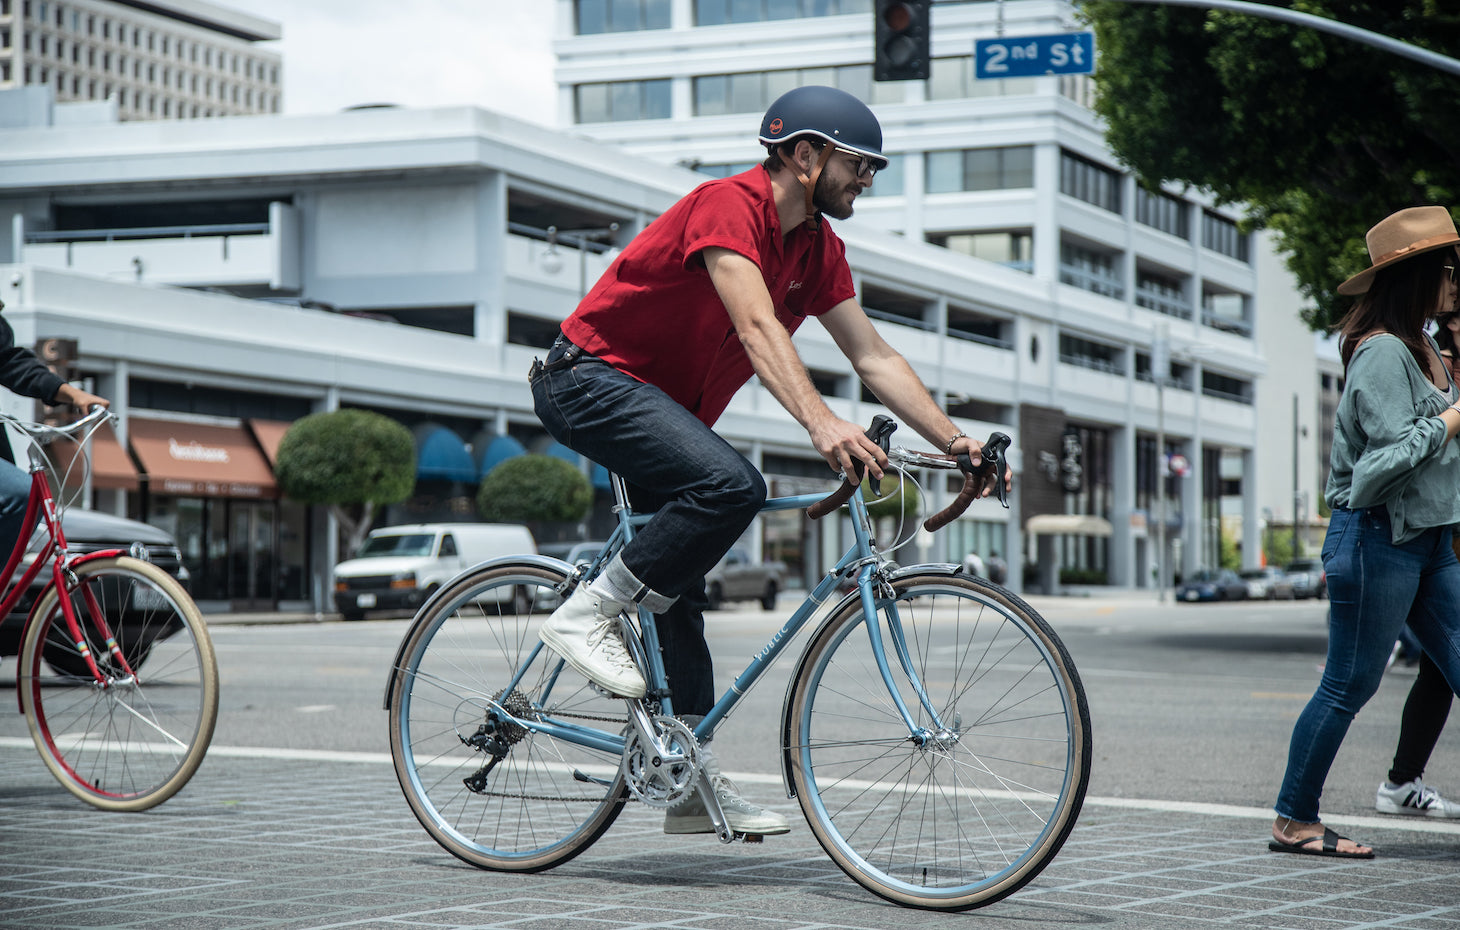 SUMMER CYCLING 101 WITH PUBLIC BIKES